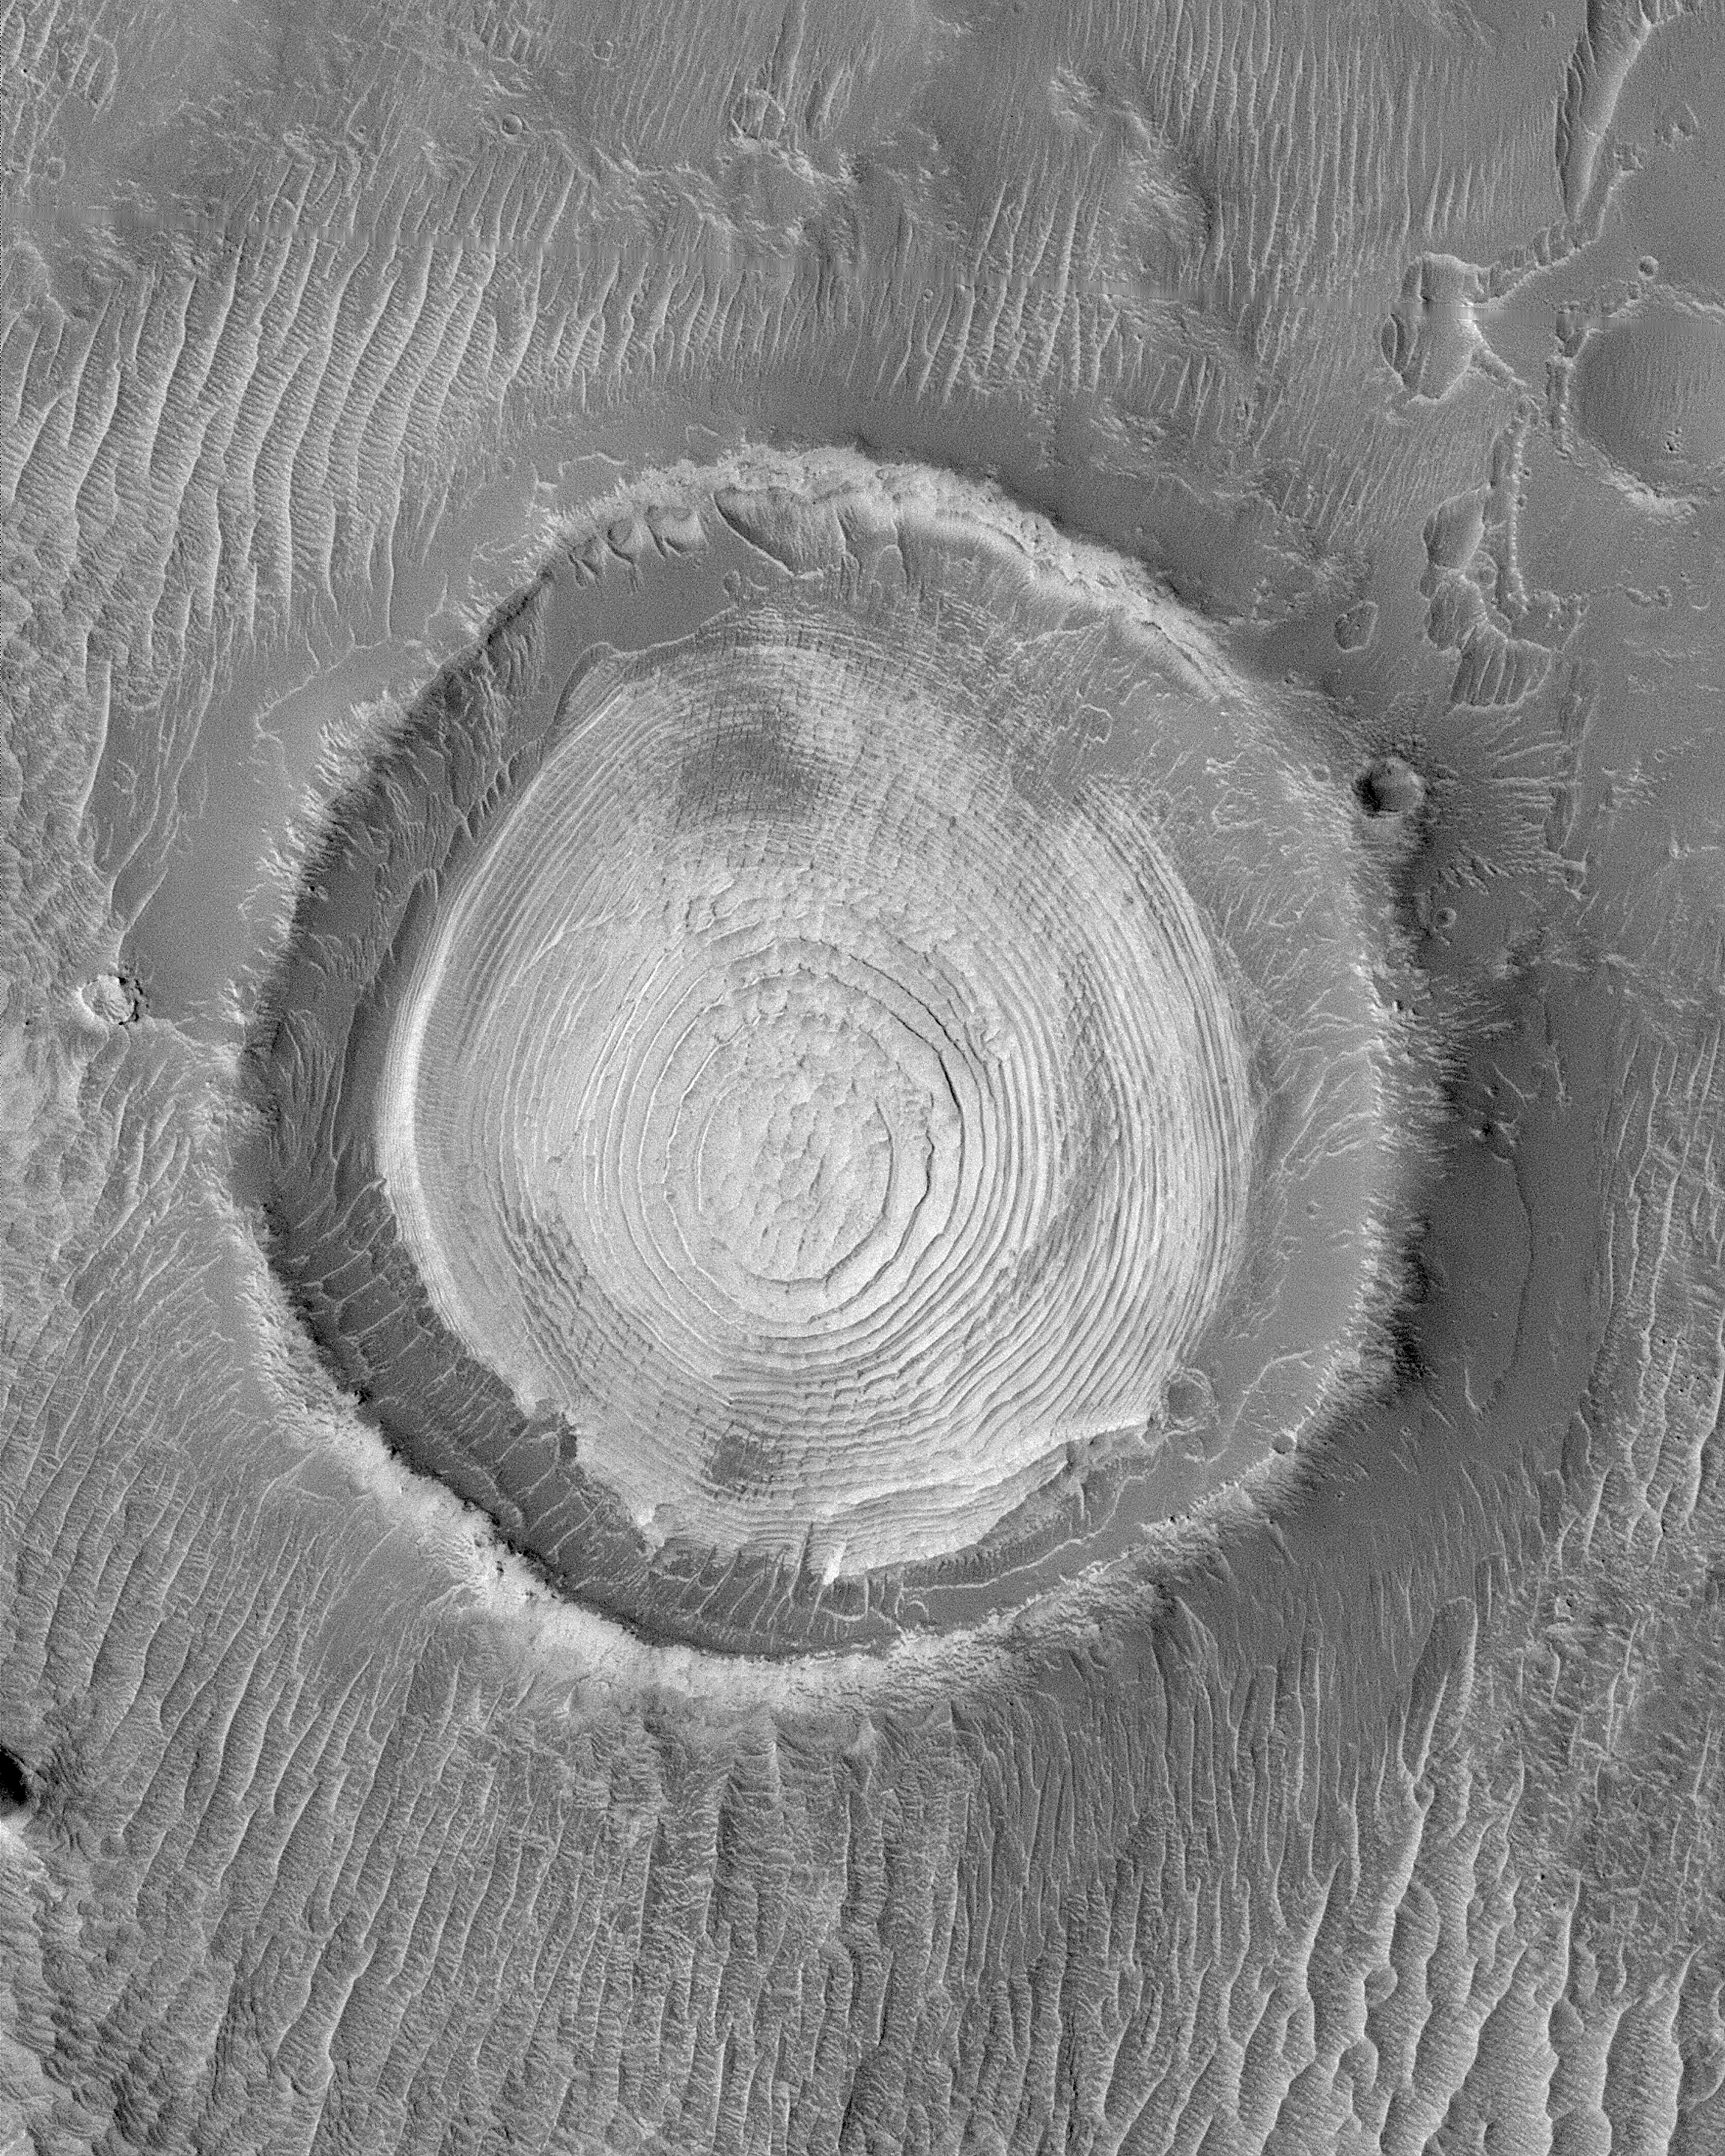 Layers in crater found within the Schiaparelli Crater basin as seen by Mars Global Surveyor